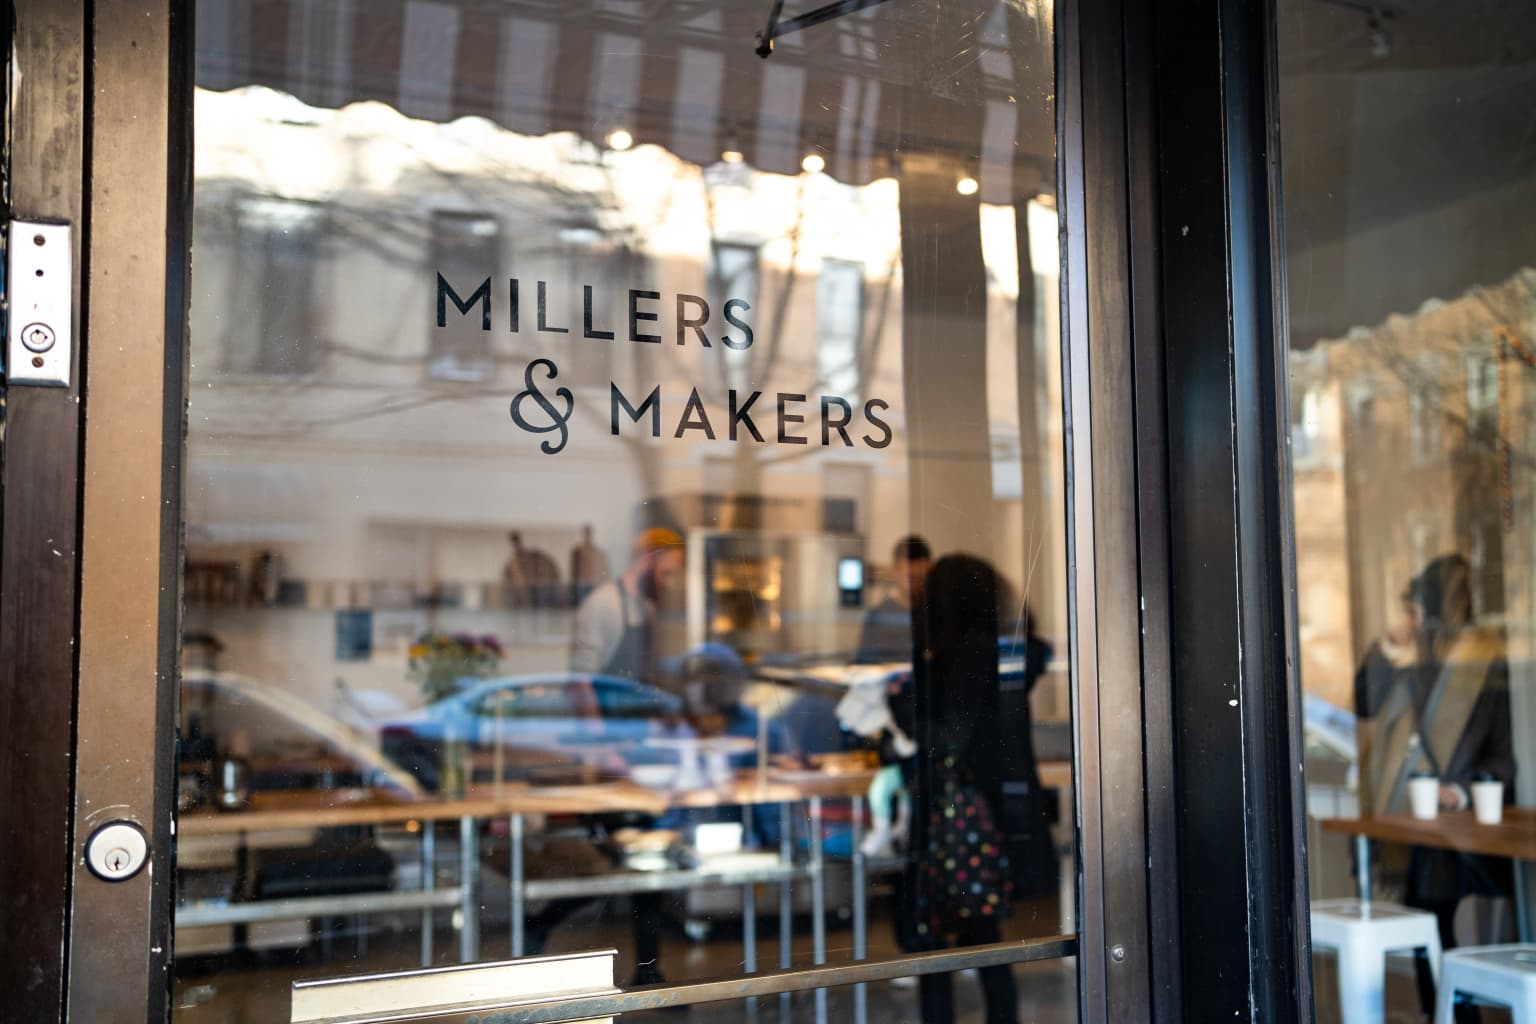 Millers & Makers